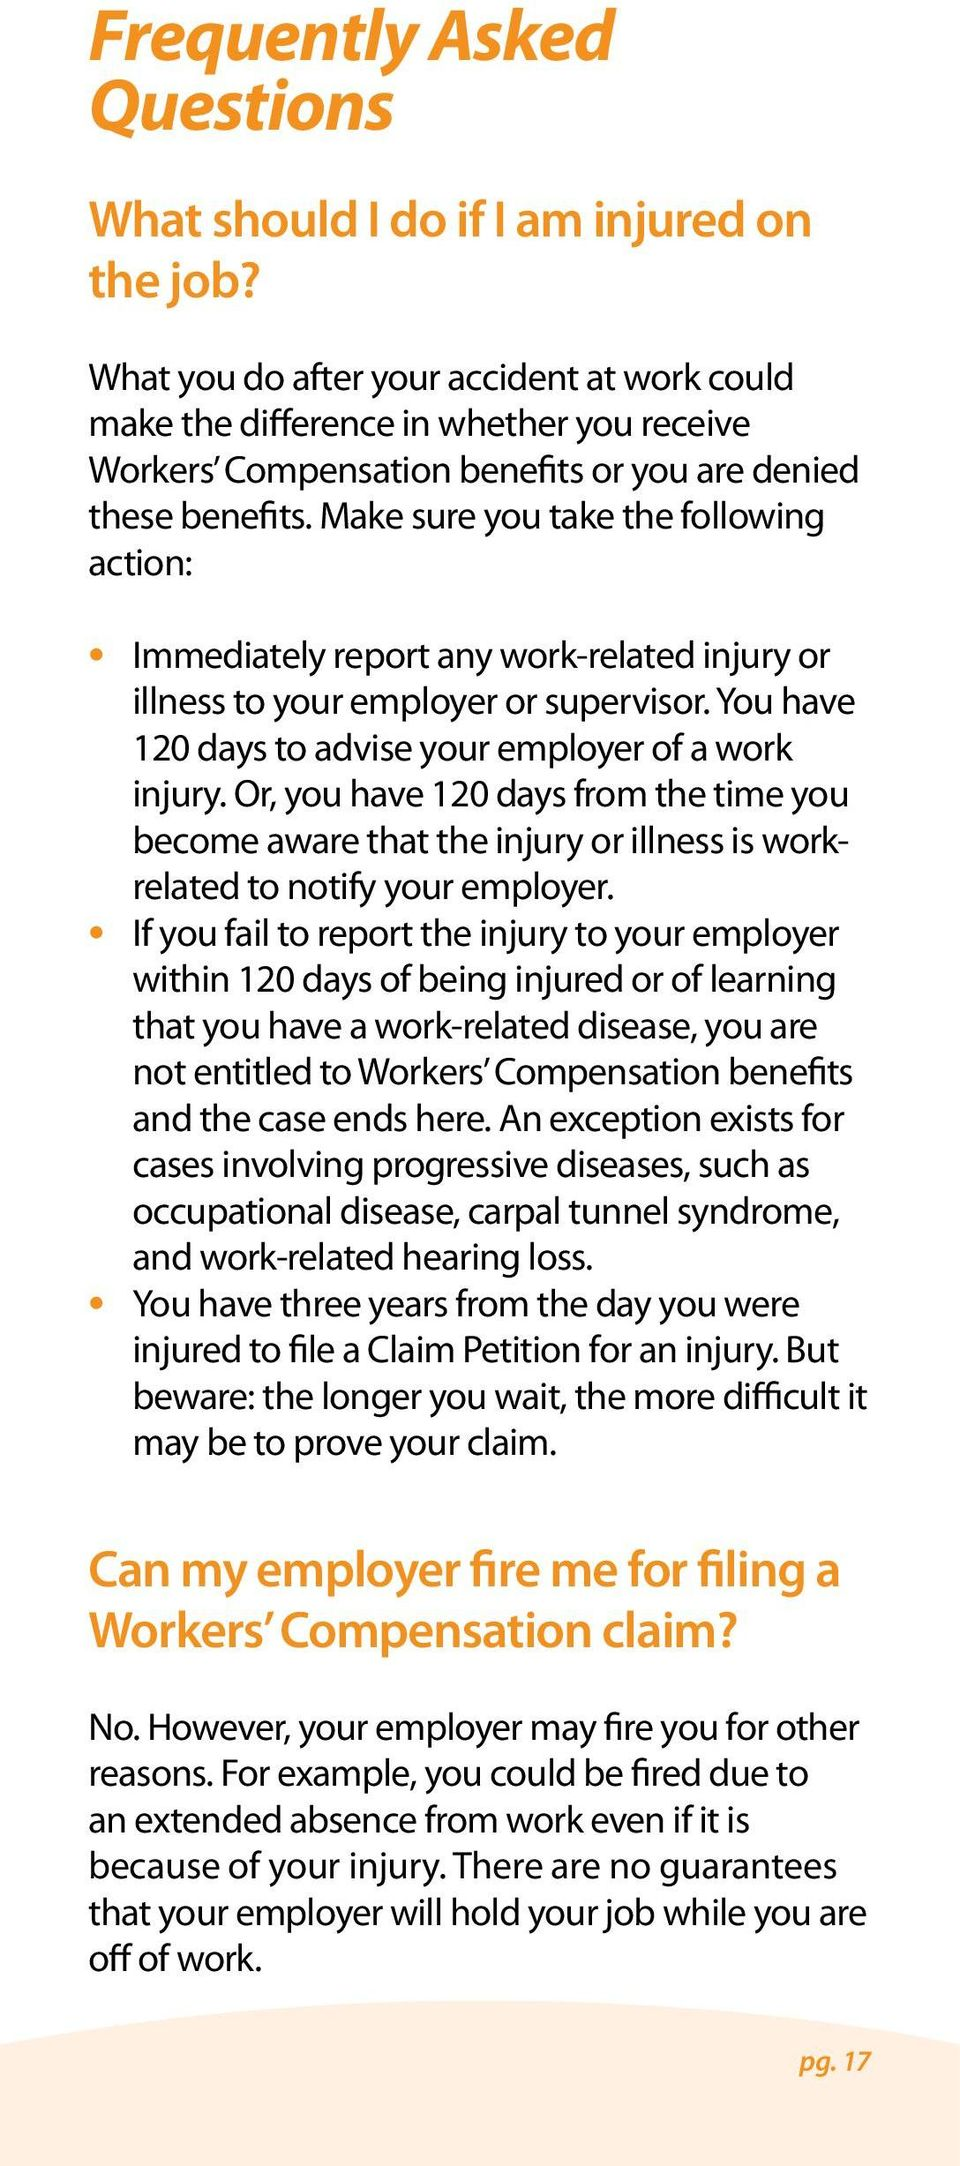 Make sure you take the following action: Immediately report any work-related injury or illness to your employer or supervisor. You have 120 days to advise your employer of a work injury.